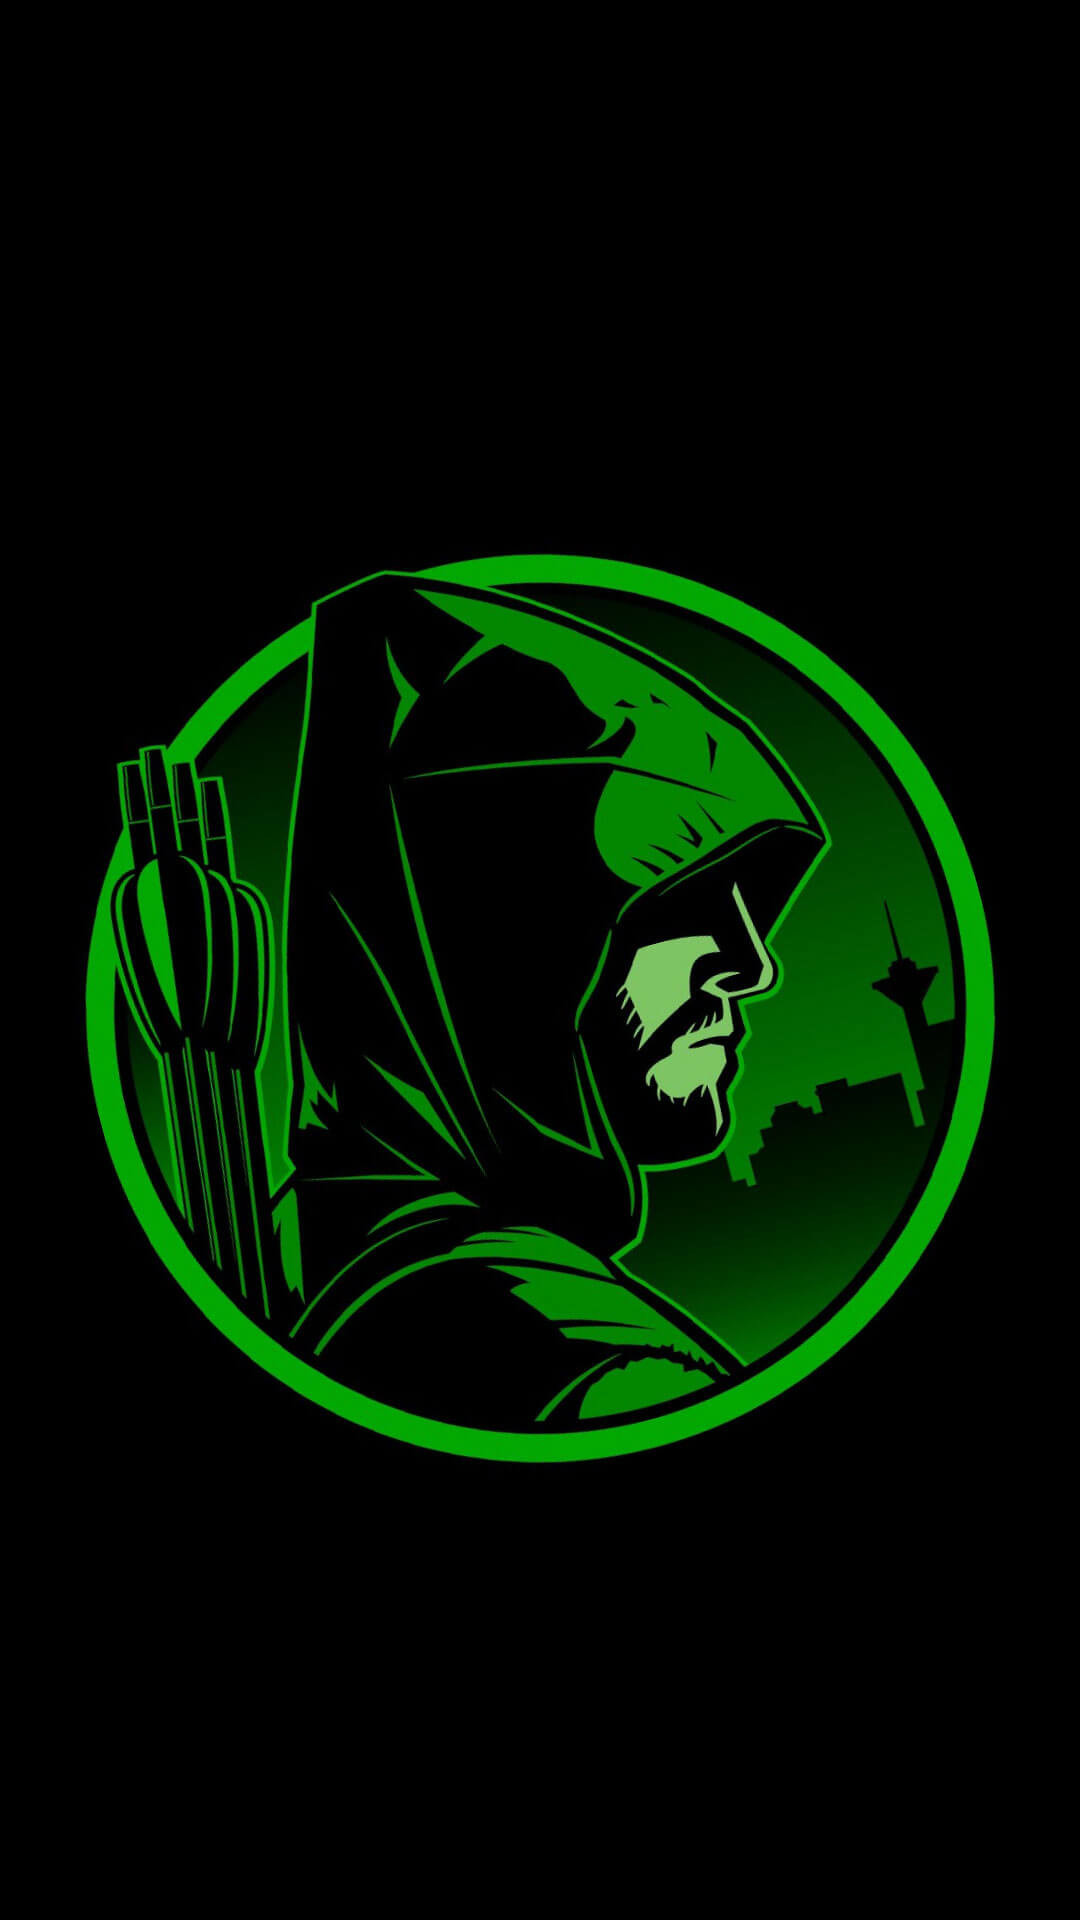 Arrow Wallpapers for Iphone 7, Iphone 7 plus, Iphone 6 plus